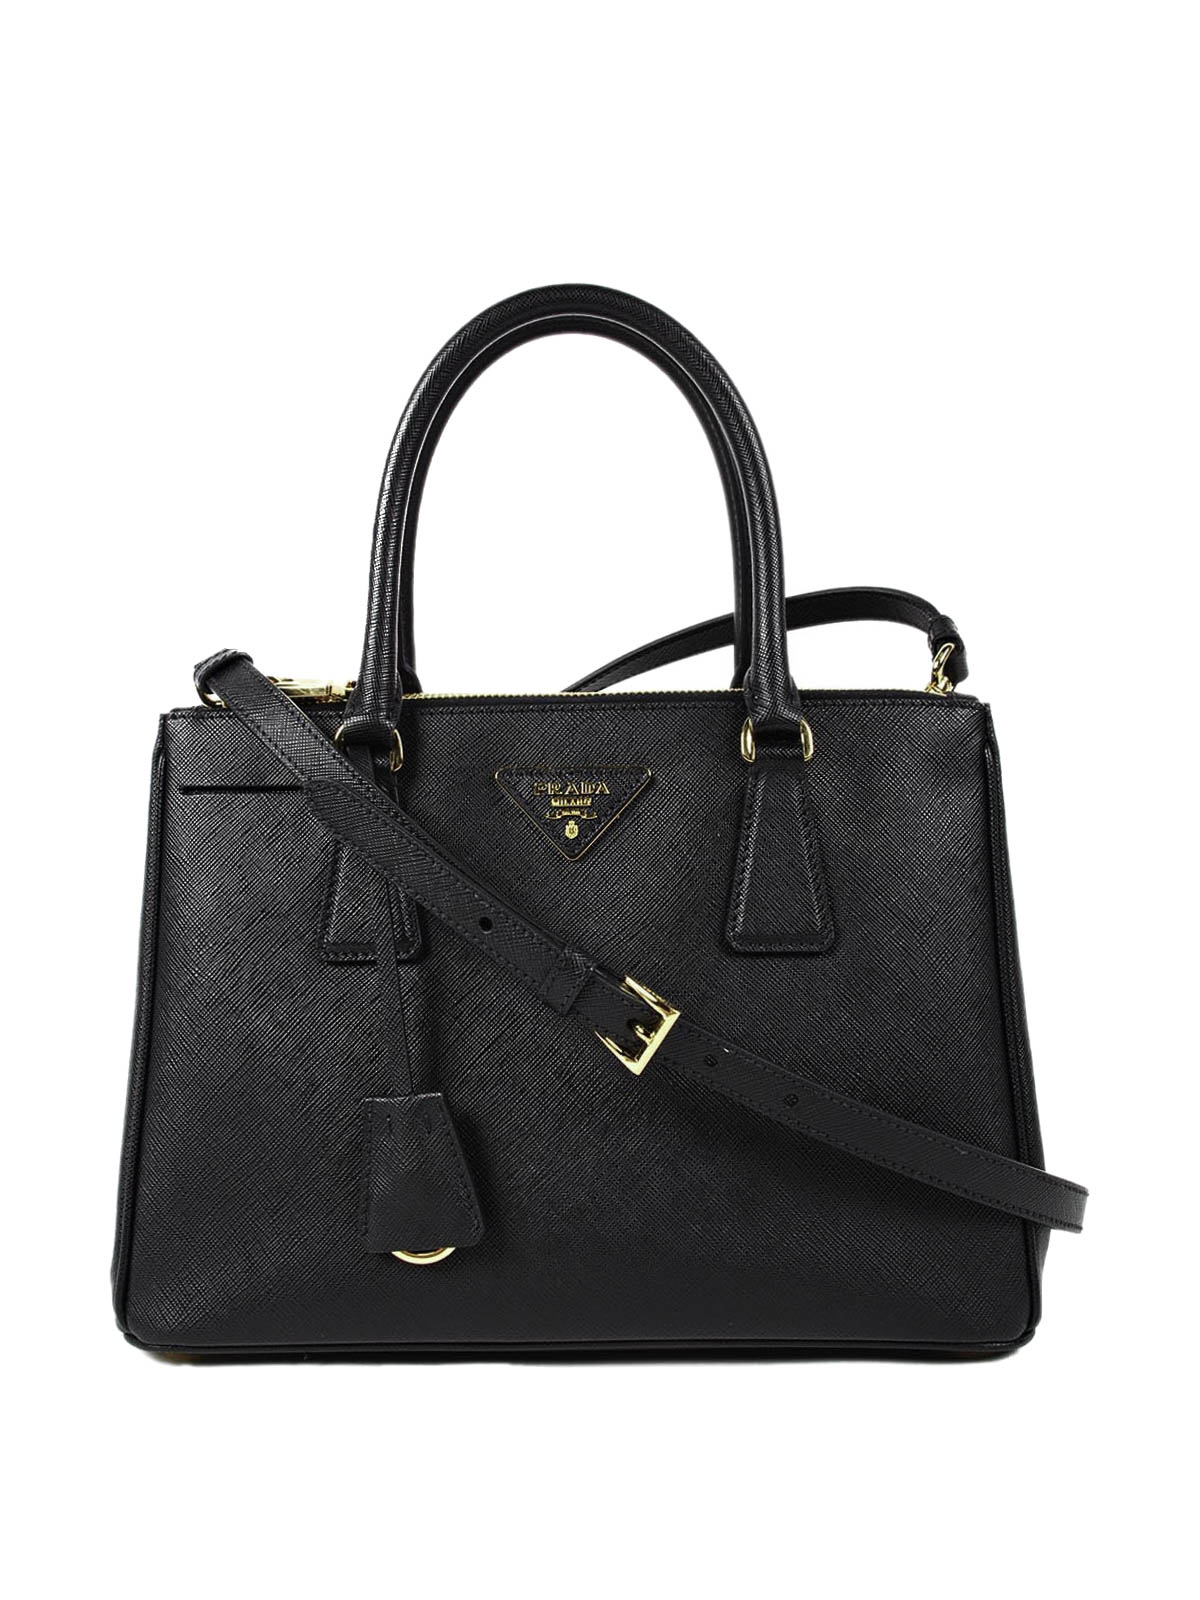 b7164fc09 Prada Saffiano Bag Reference Guide | Spotted Fashion